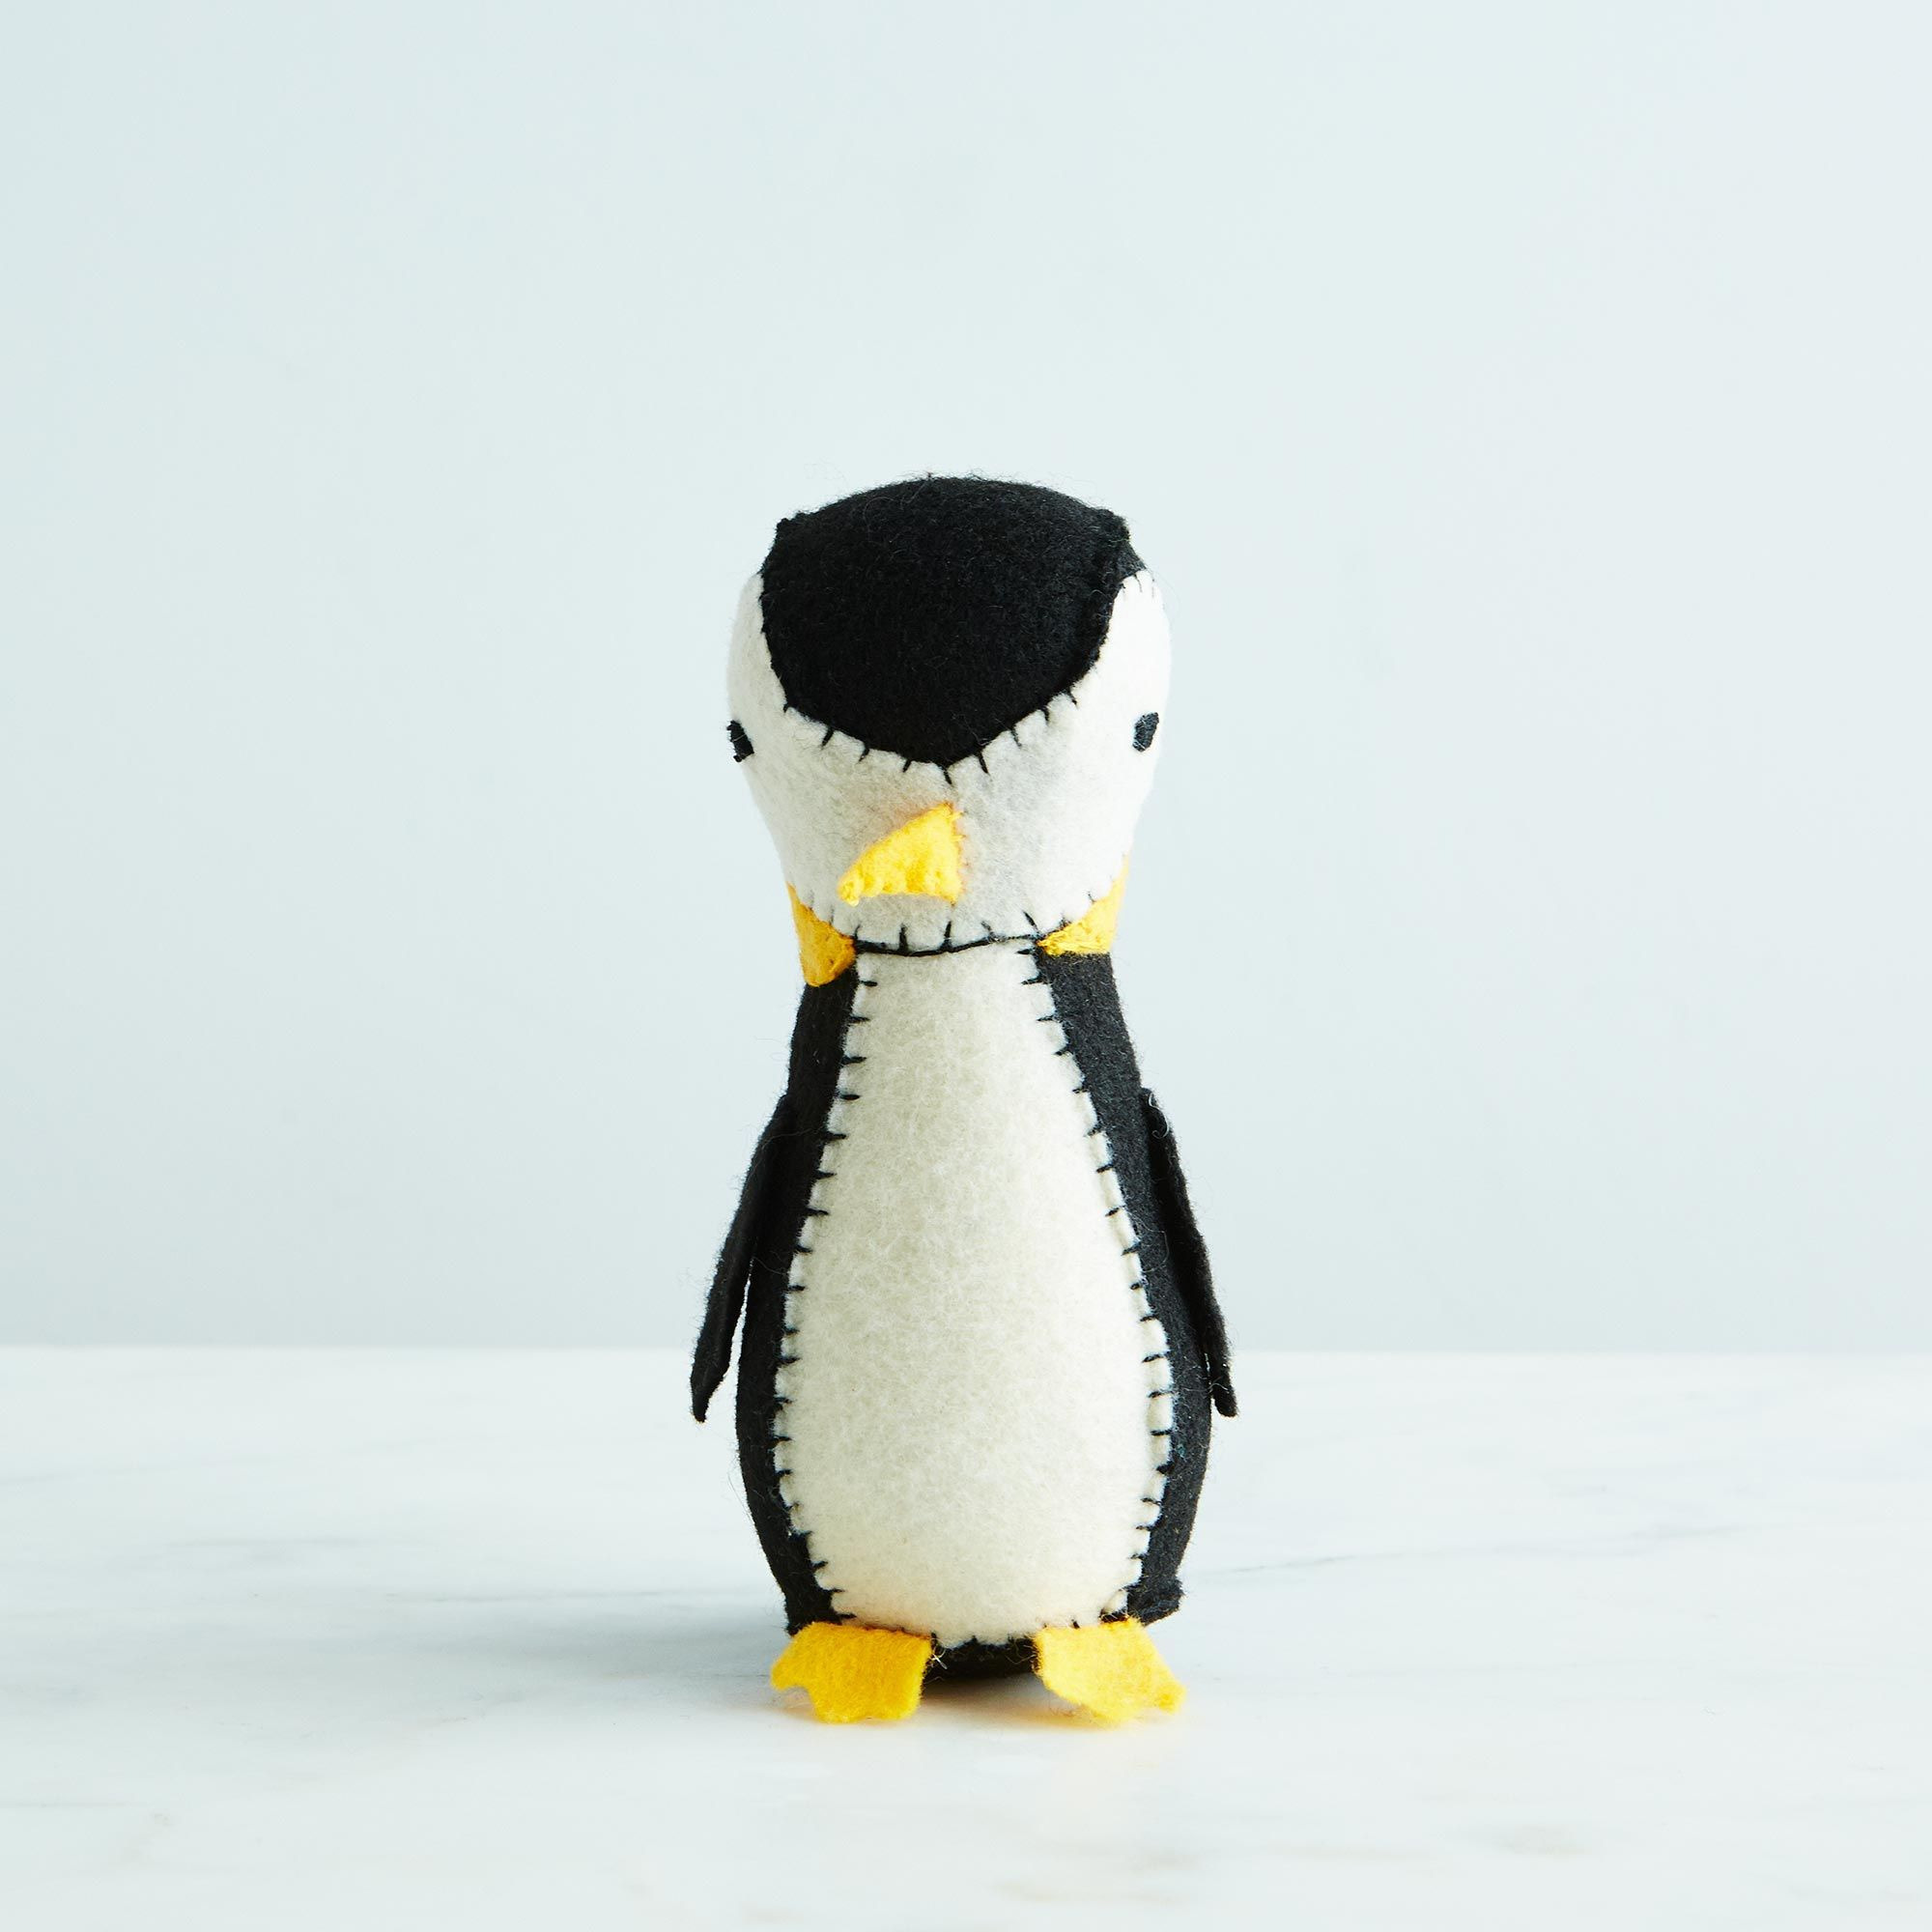 676280cc a0f7 11e5 a190 0ef7535729df  live dream create plush animals penguin provisions mark weinberg 17 11 14 0030 silo